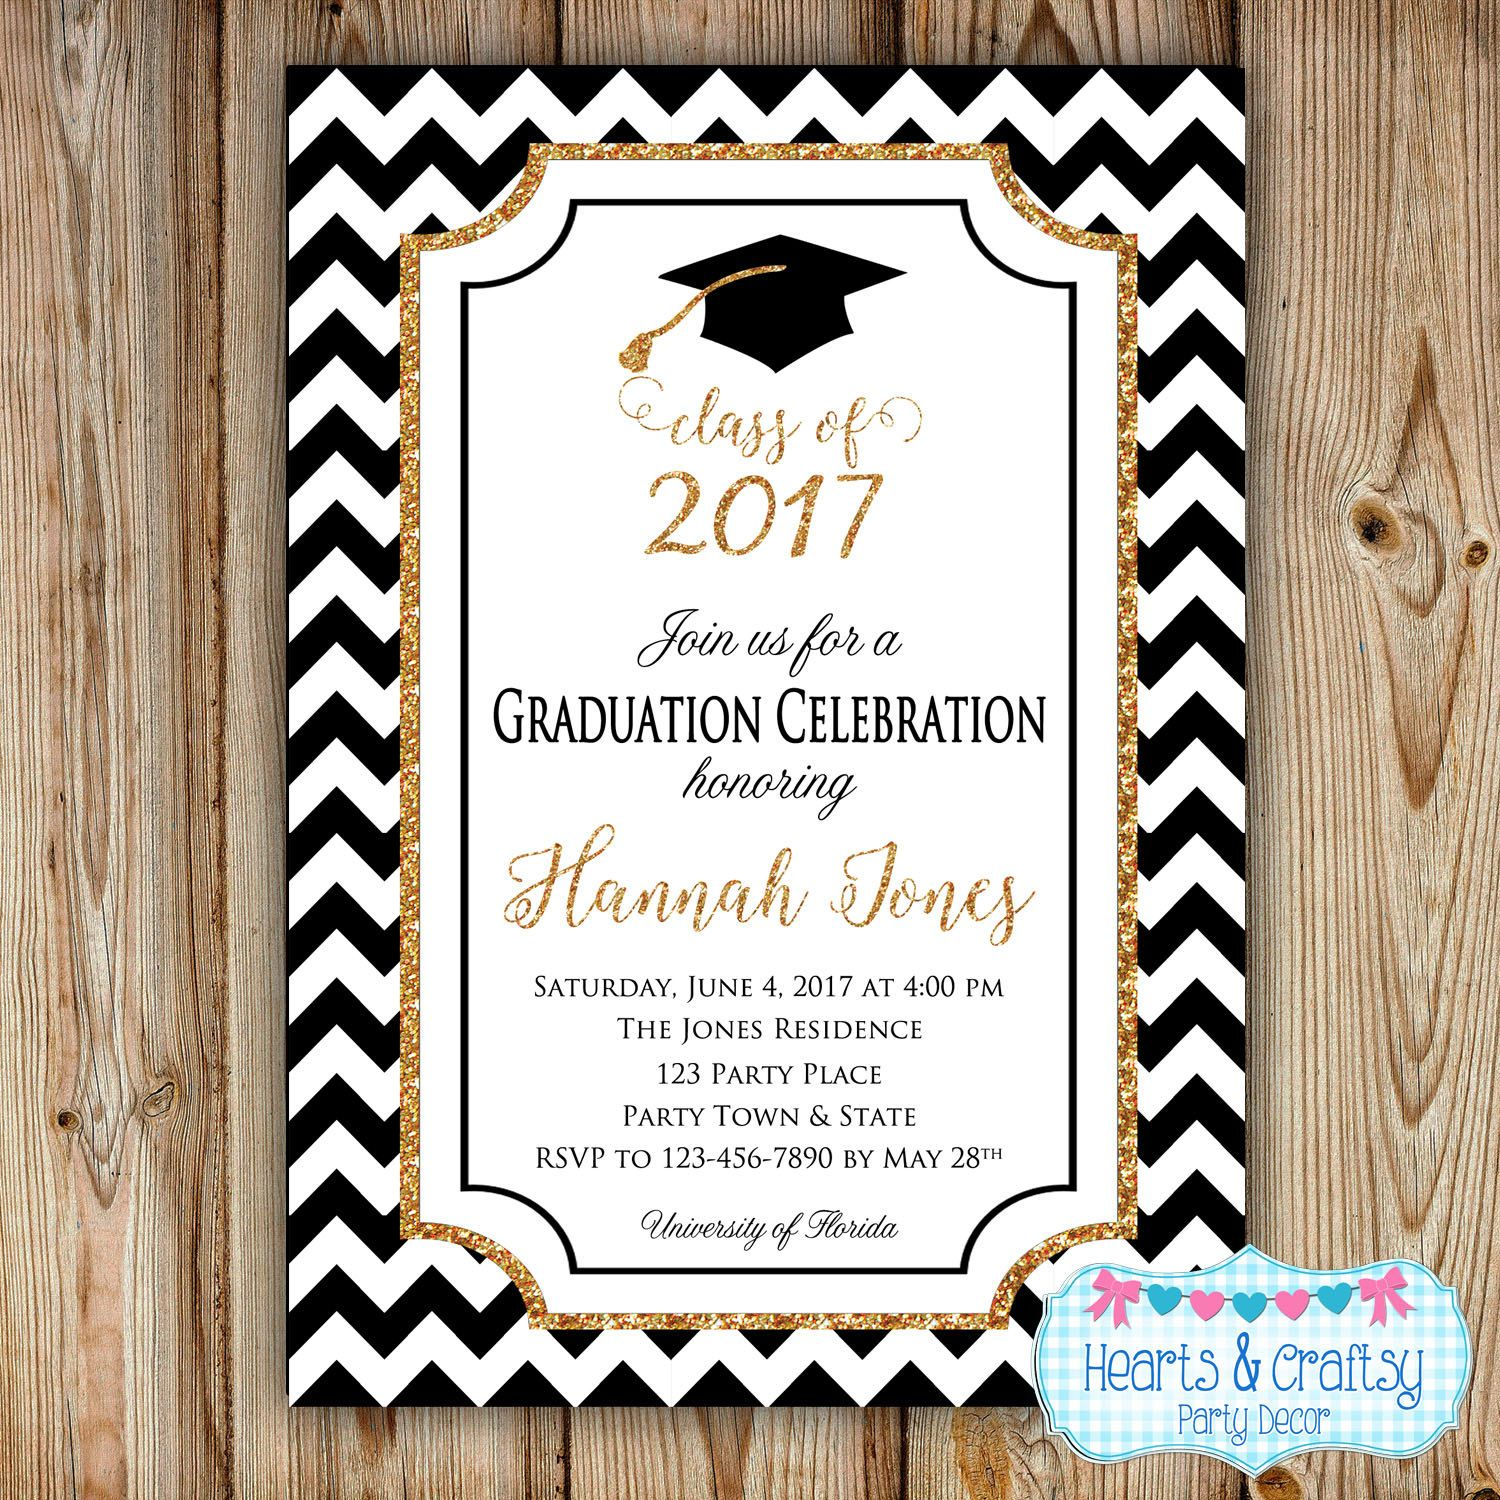 designs black graduation name cards well full size avery also create